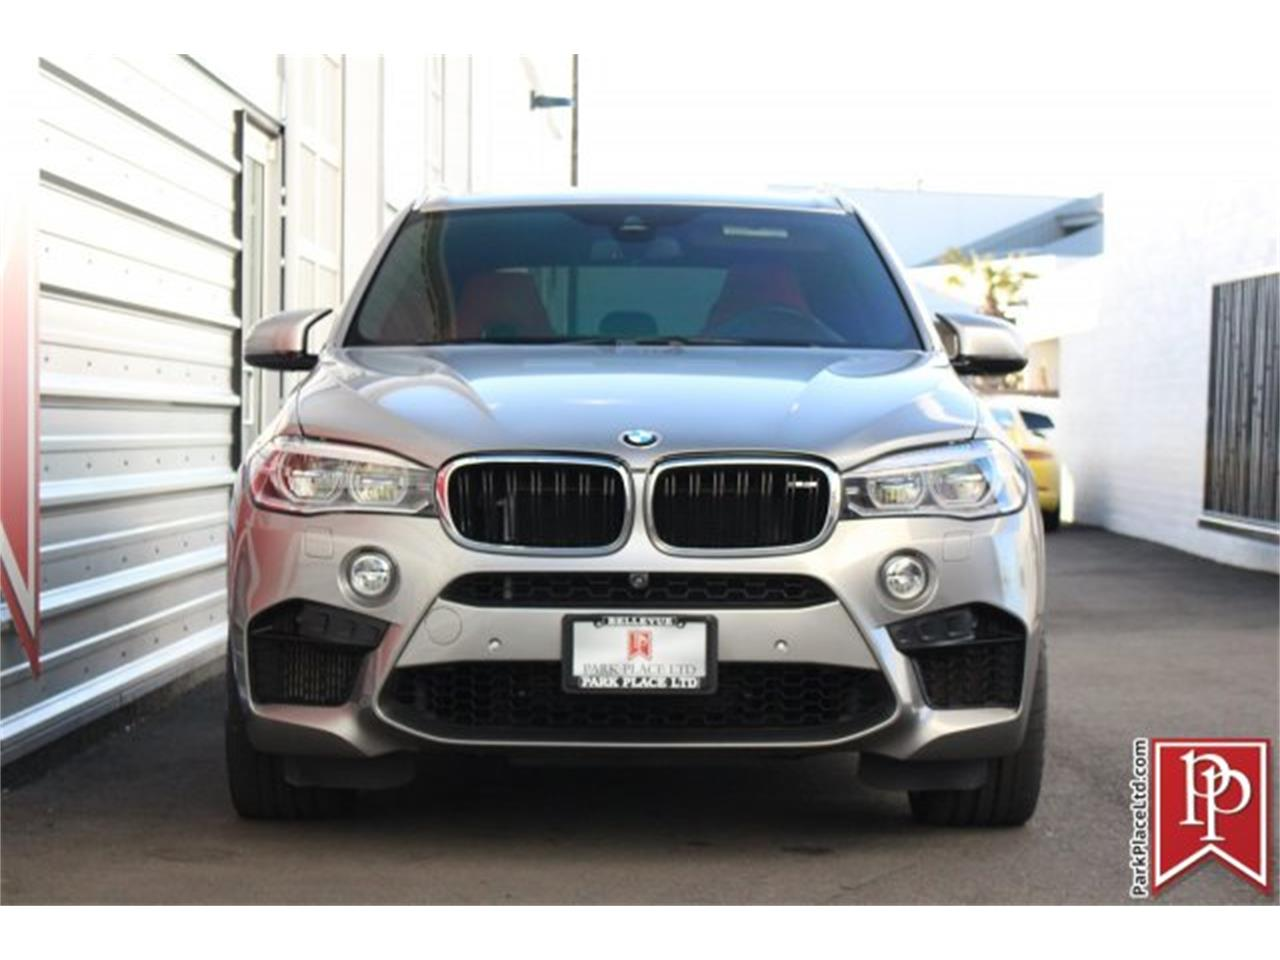 Large Picture of 2015 BMW X5 located in Bellevue Washington - $69,950.00 Offered by Park Place Ltd - MZEY